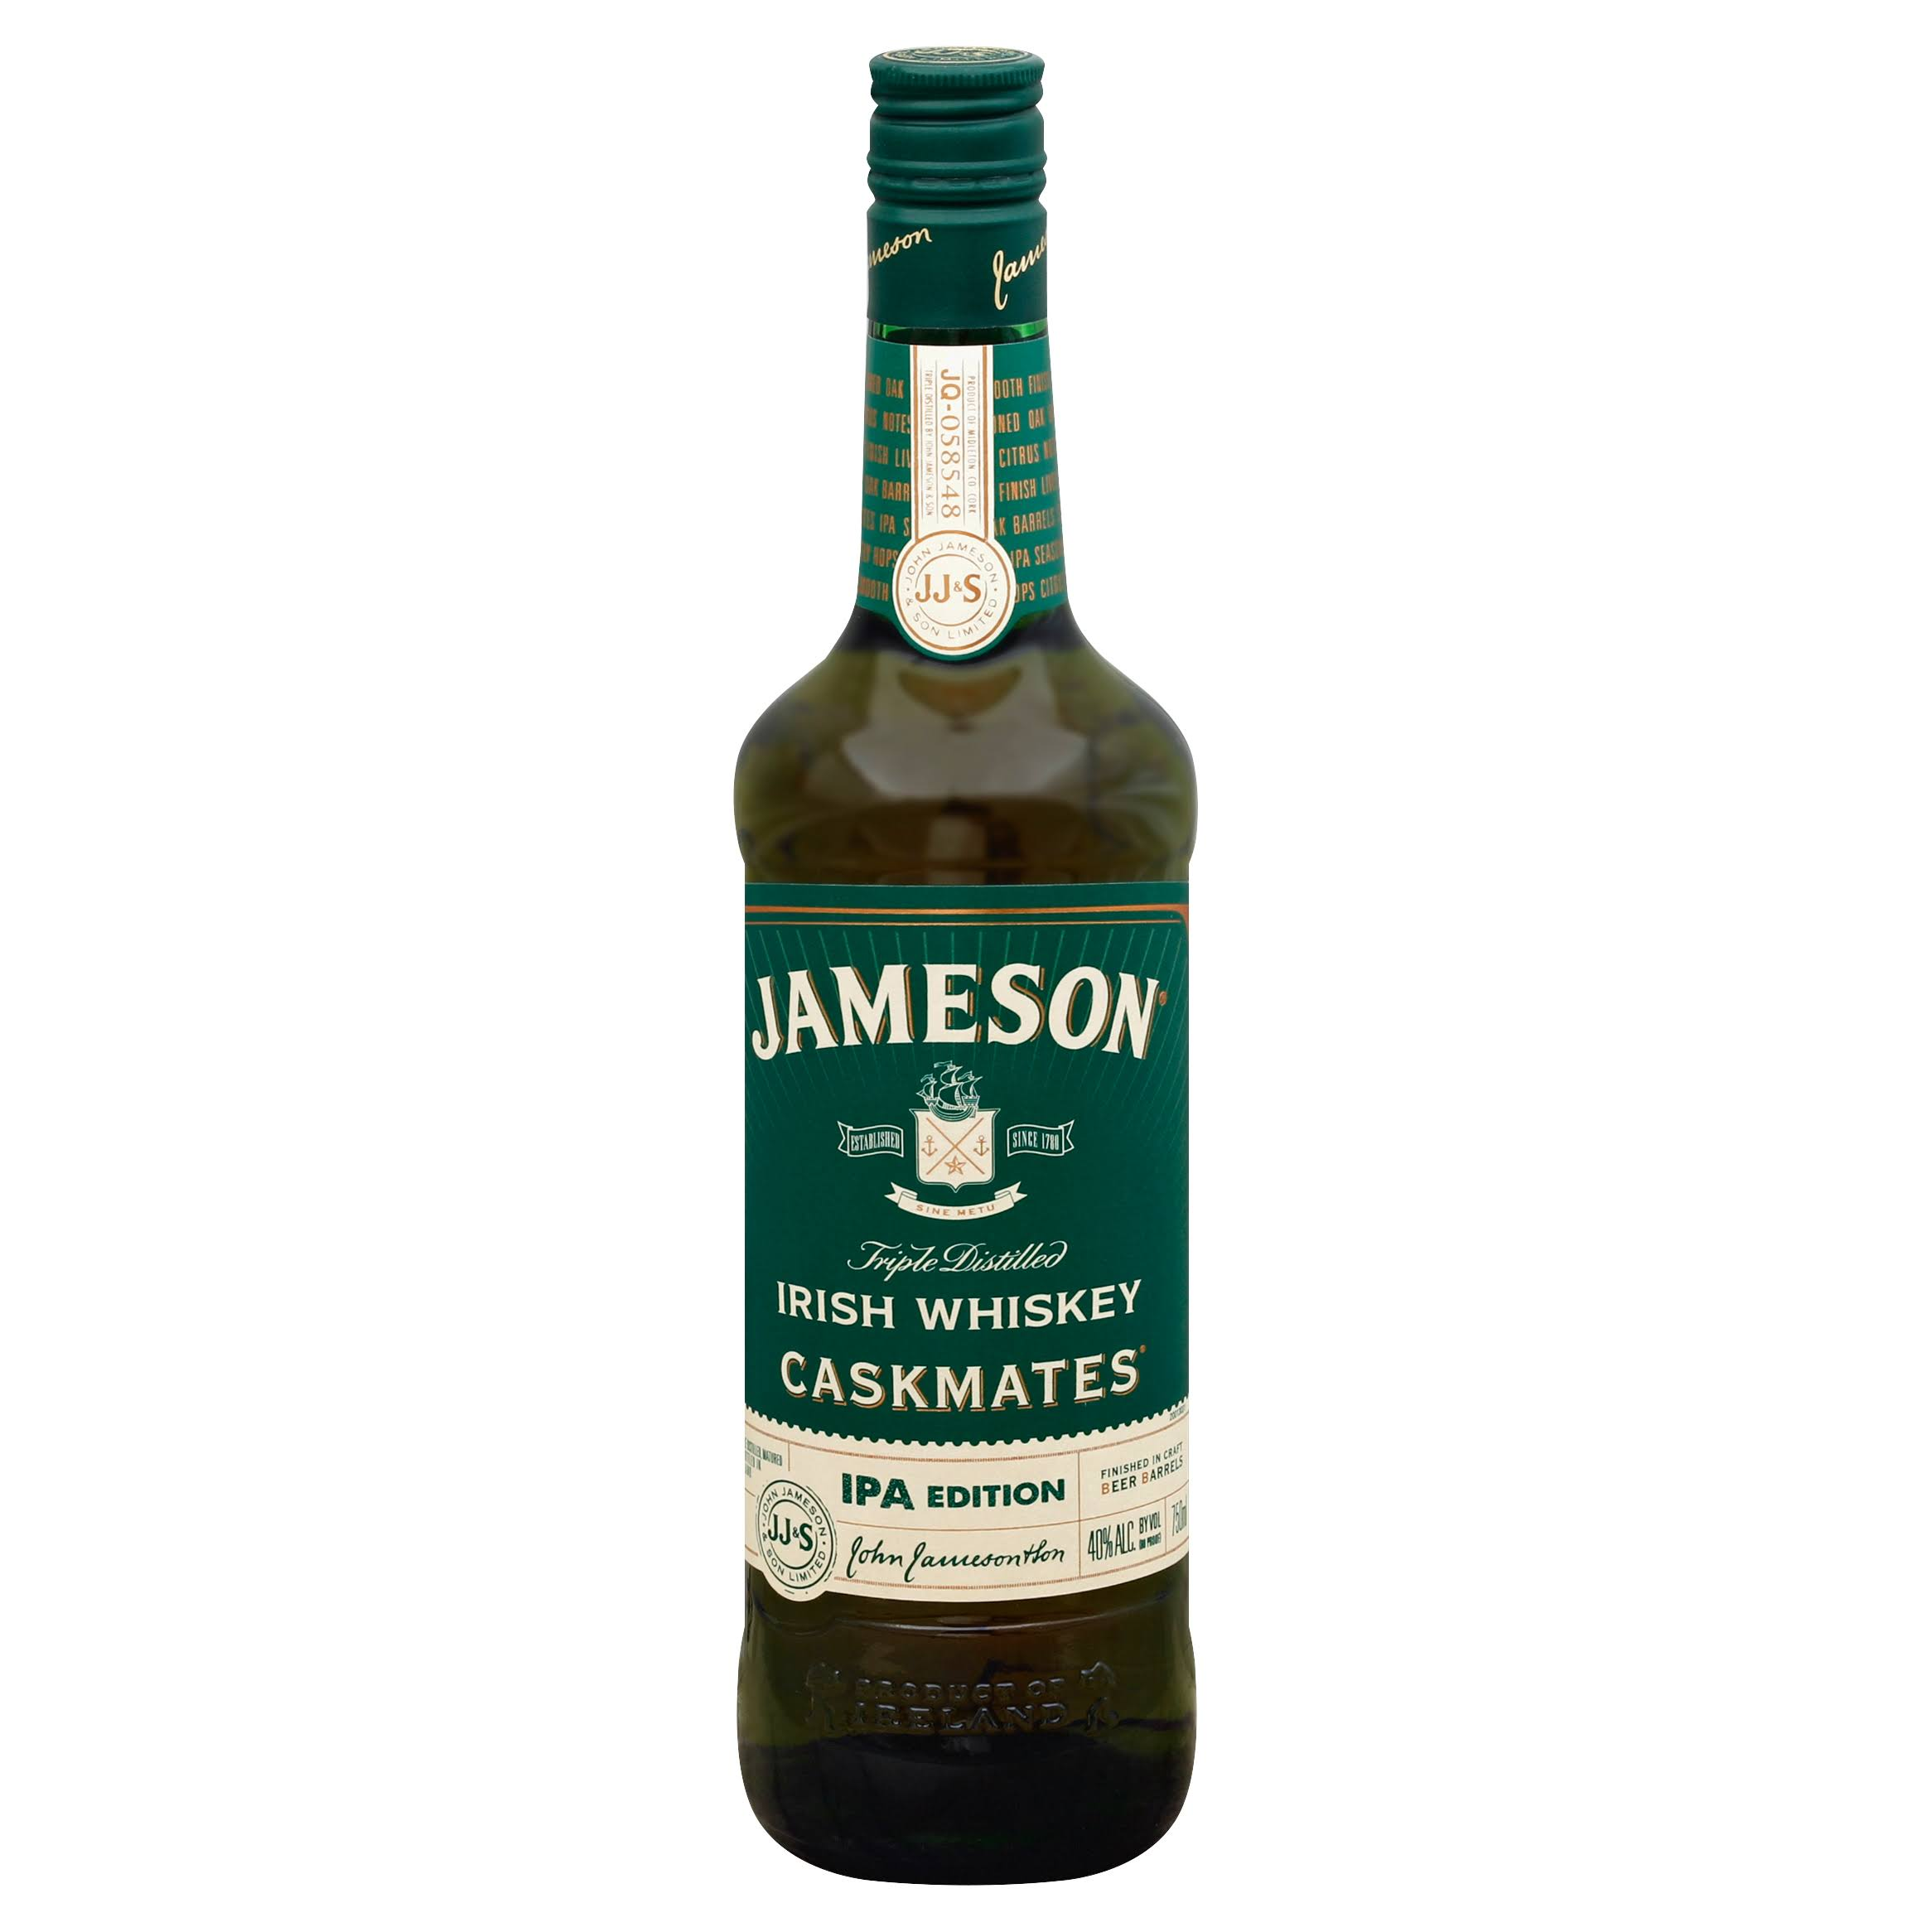 Jameson Caskmates Whiskey, Irish, Triple Distilled - 750 ml